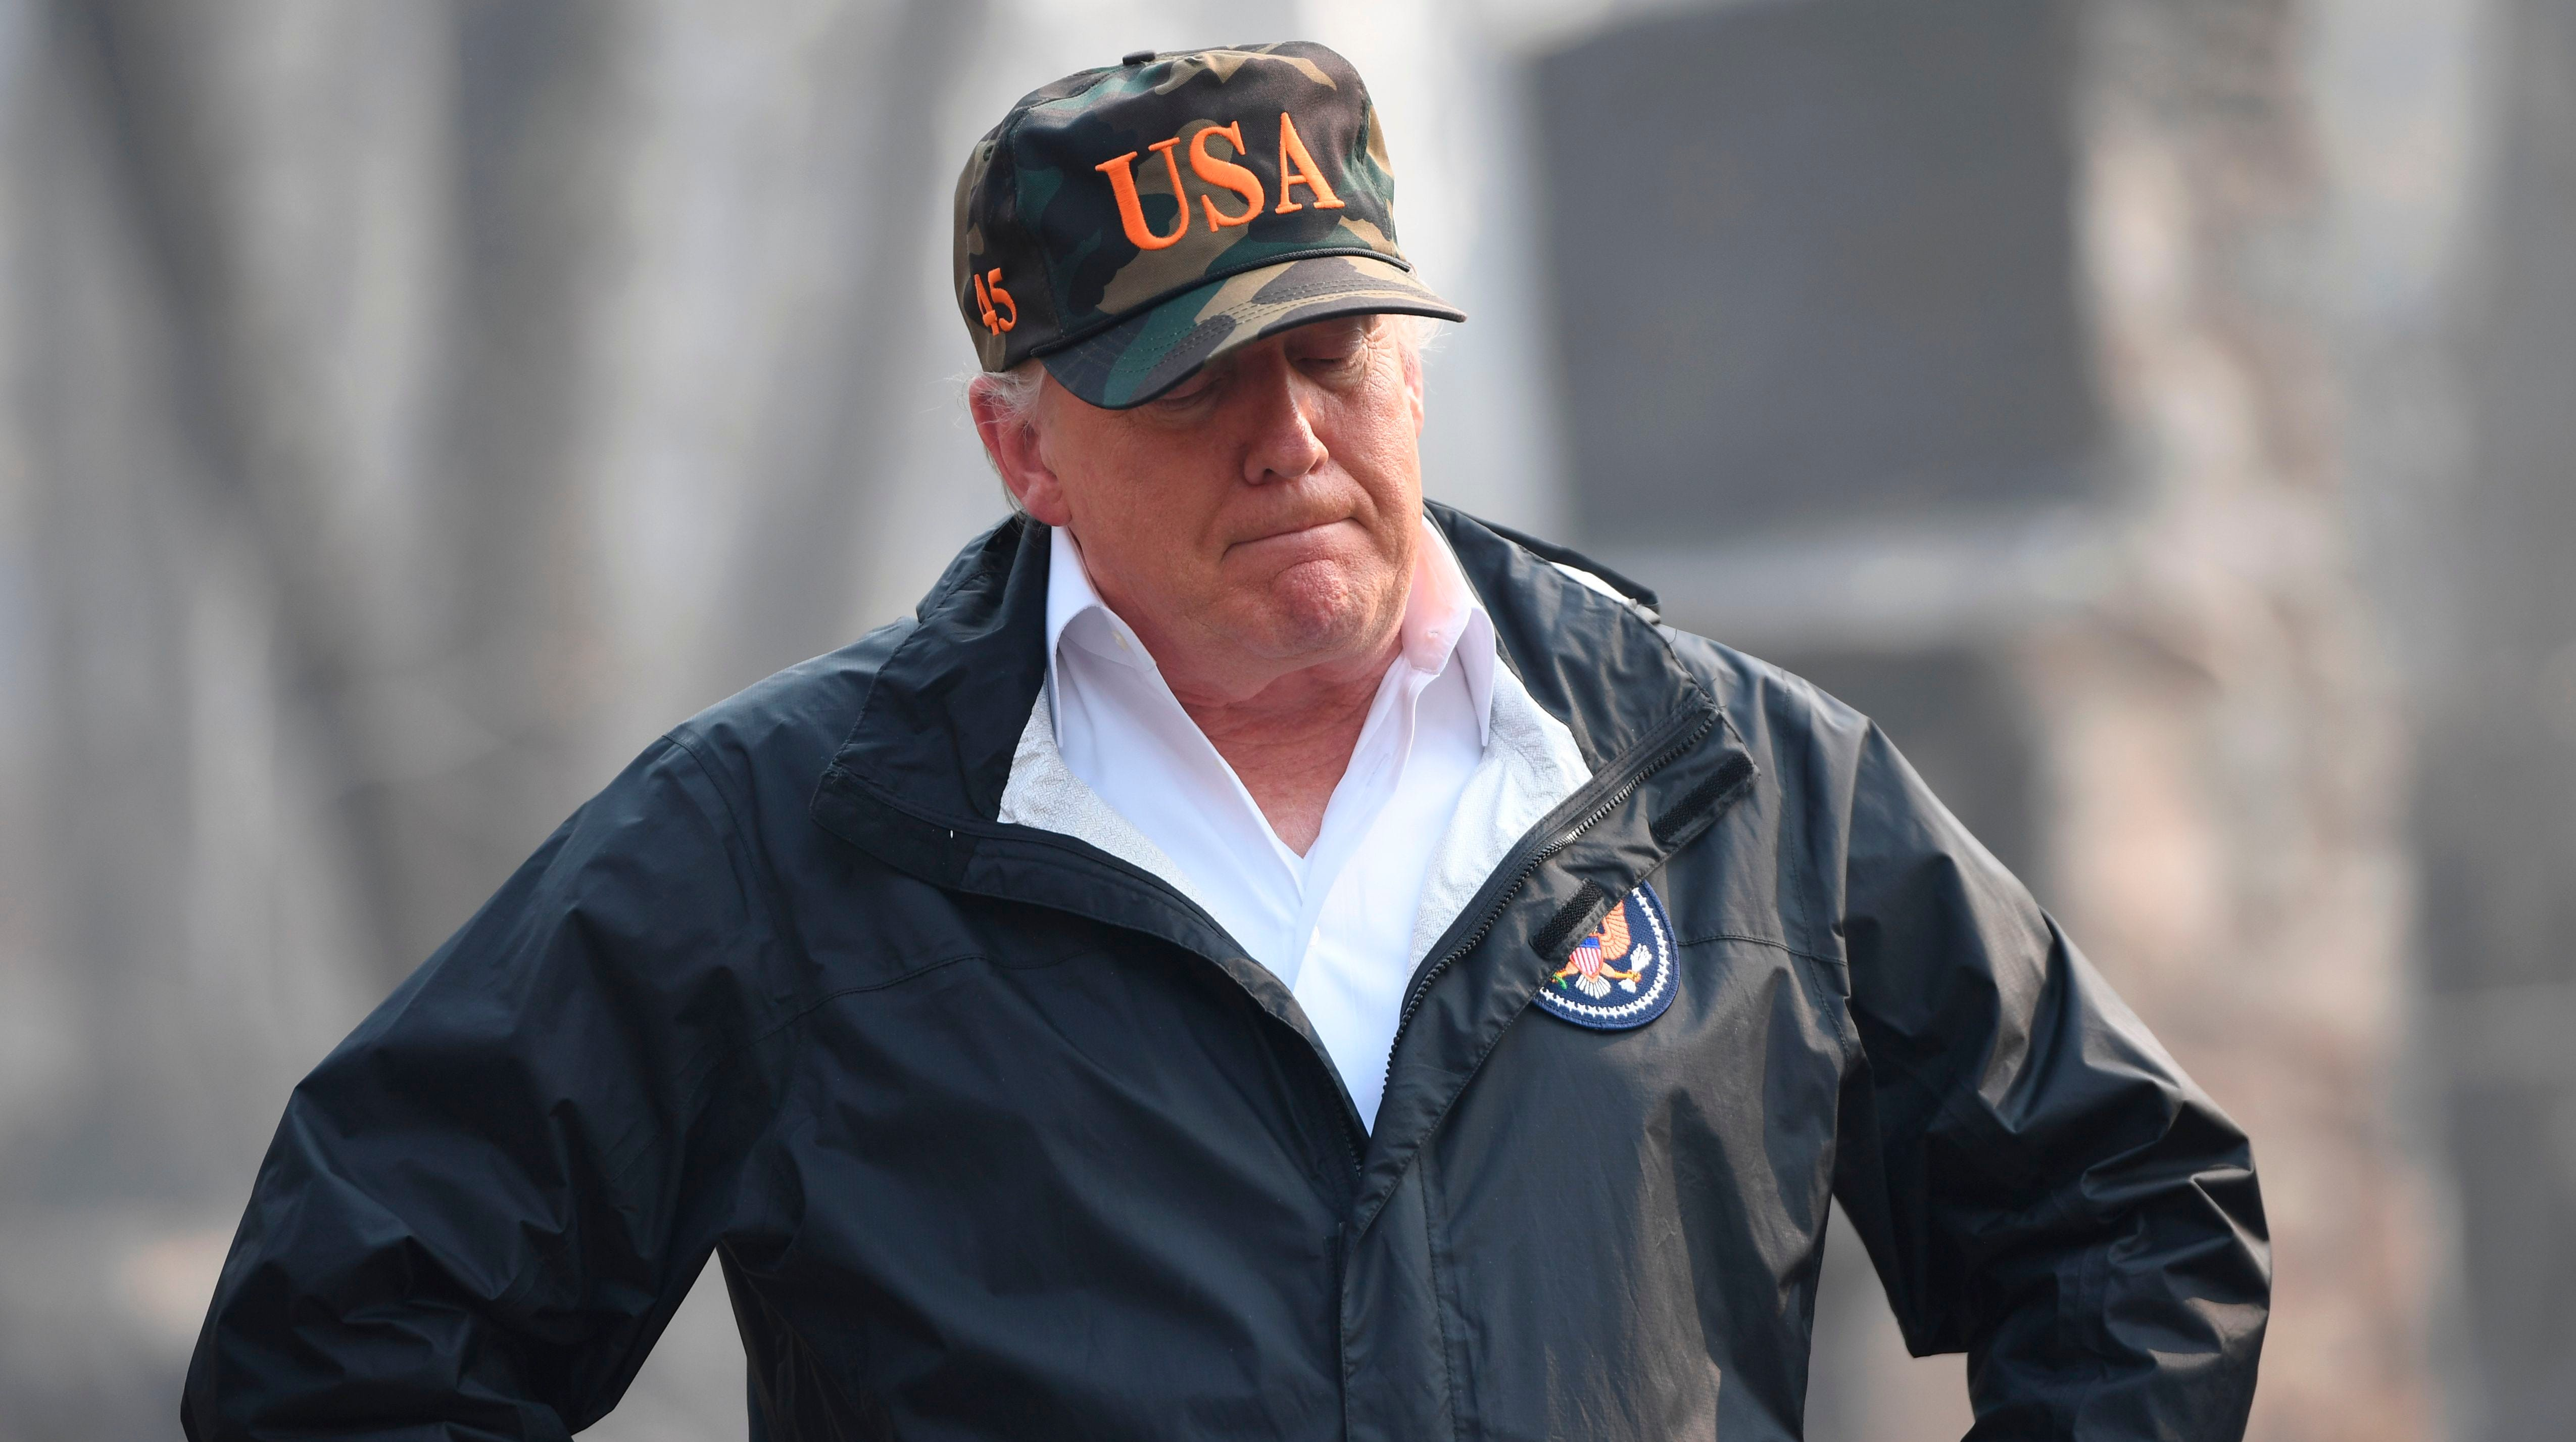 President Donald Trump looks on as he views damage from wildfires in Paradise, California on Nov. 17, 2018.